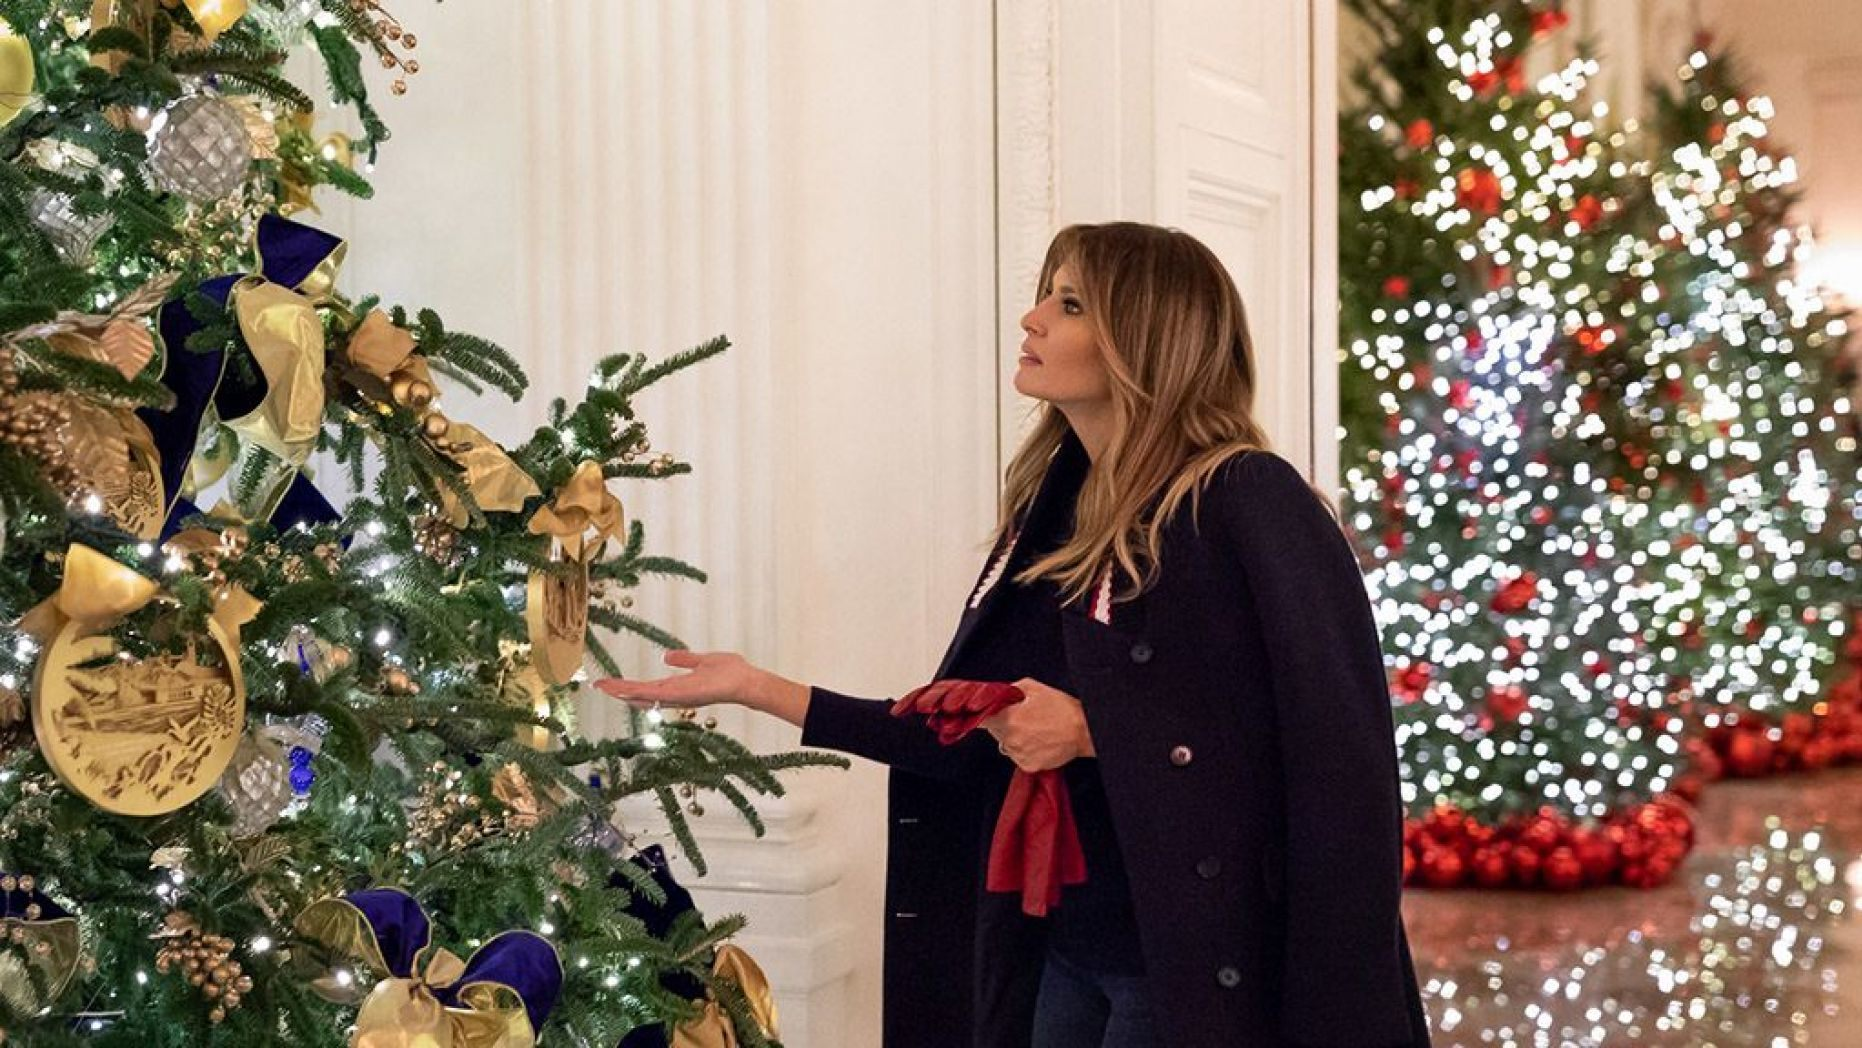 Melania Trump brushes off Christmas decoration critics I